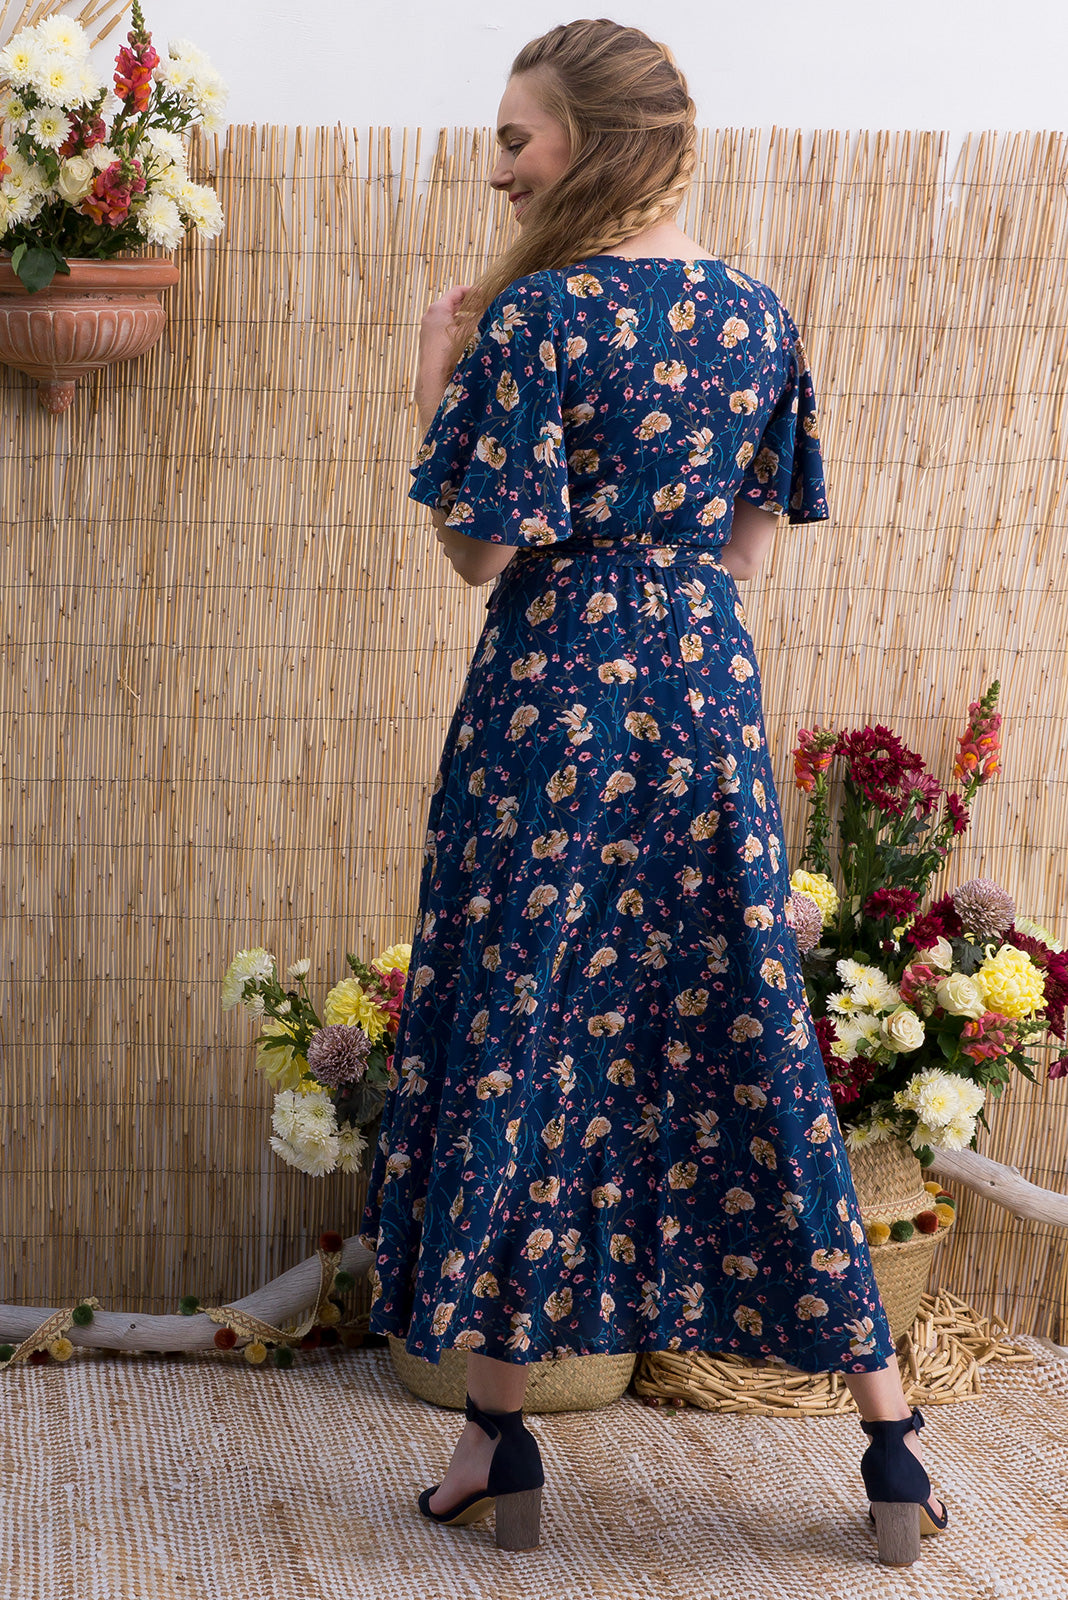 Petal 8 Navy Scatterlings Maxi Wrap Dress features a dusty navy base with a dainty floral bohemian print on a soft woven rayon